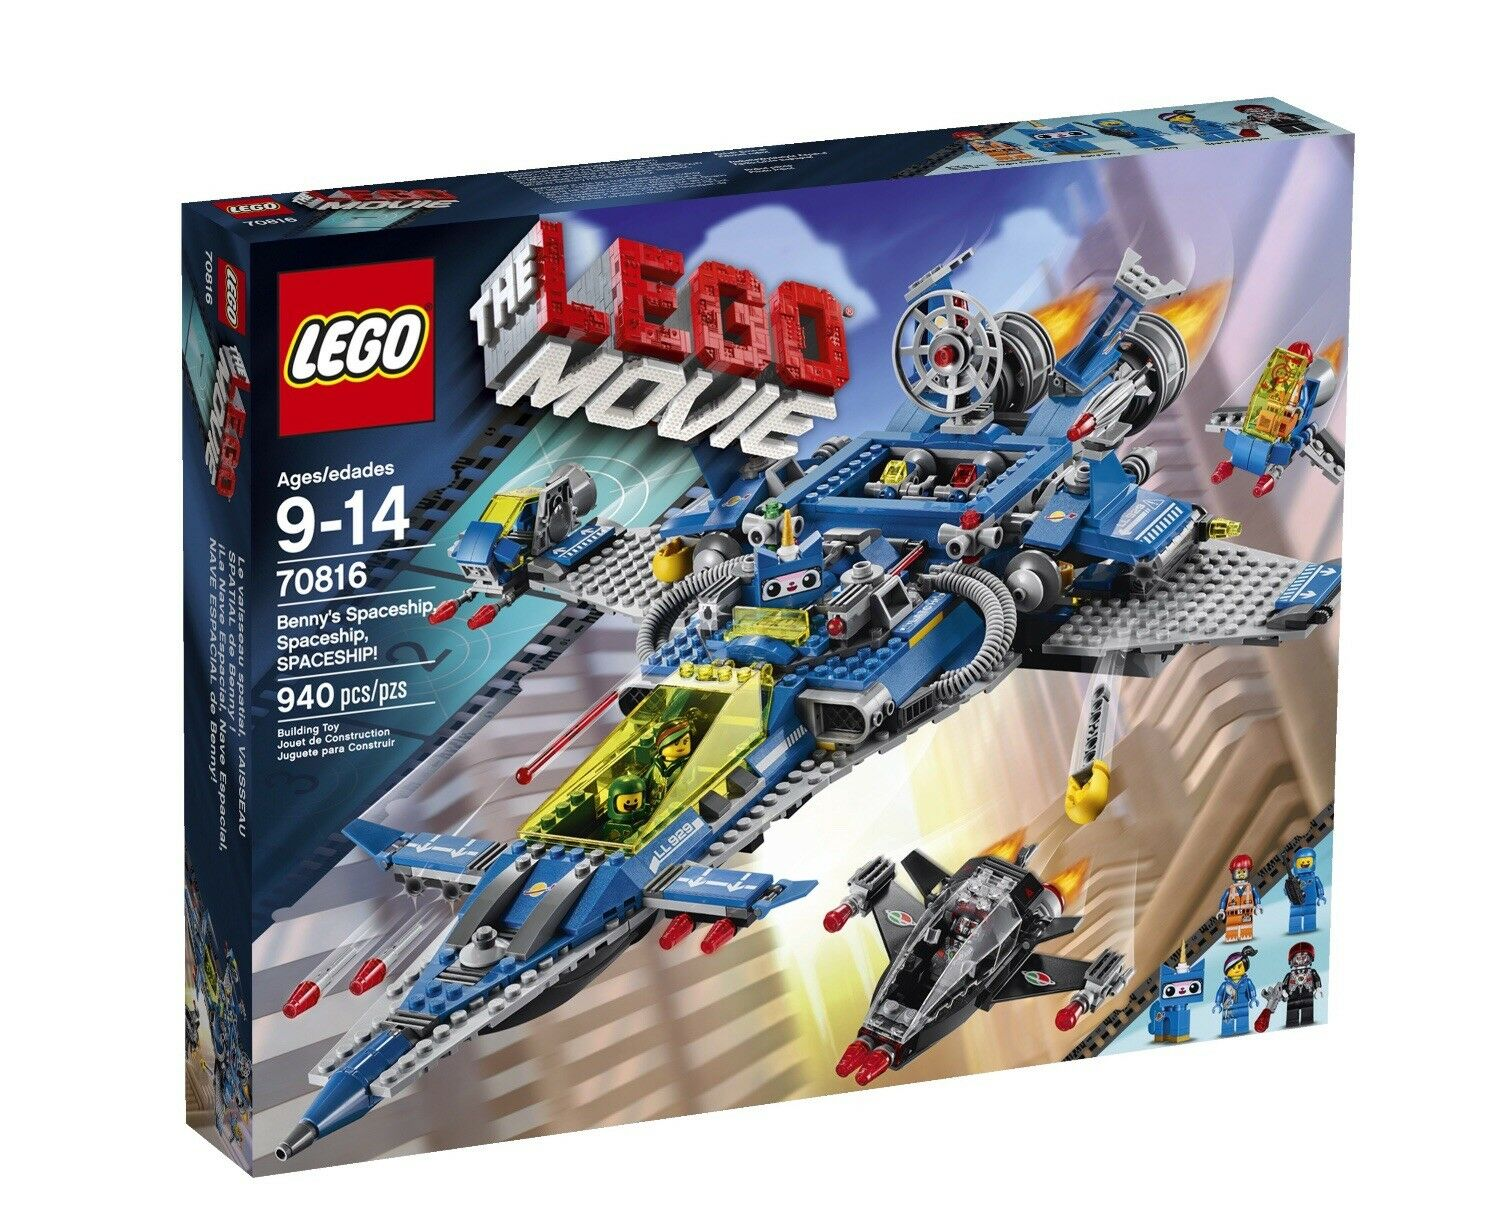 LEGO Movie 70816 Benny's Spaceship, Spaceship, Spaceship  New Sealed Retirot